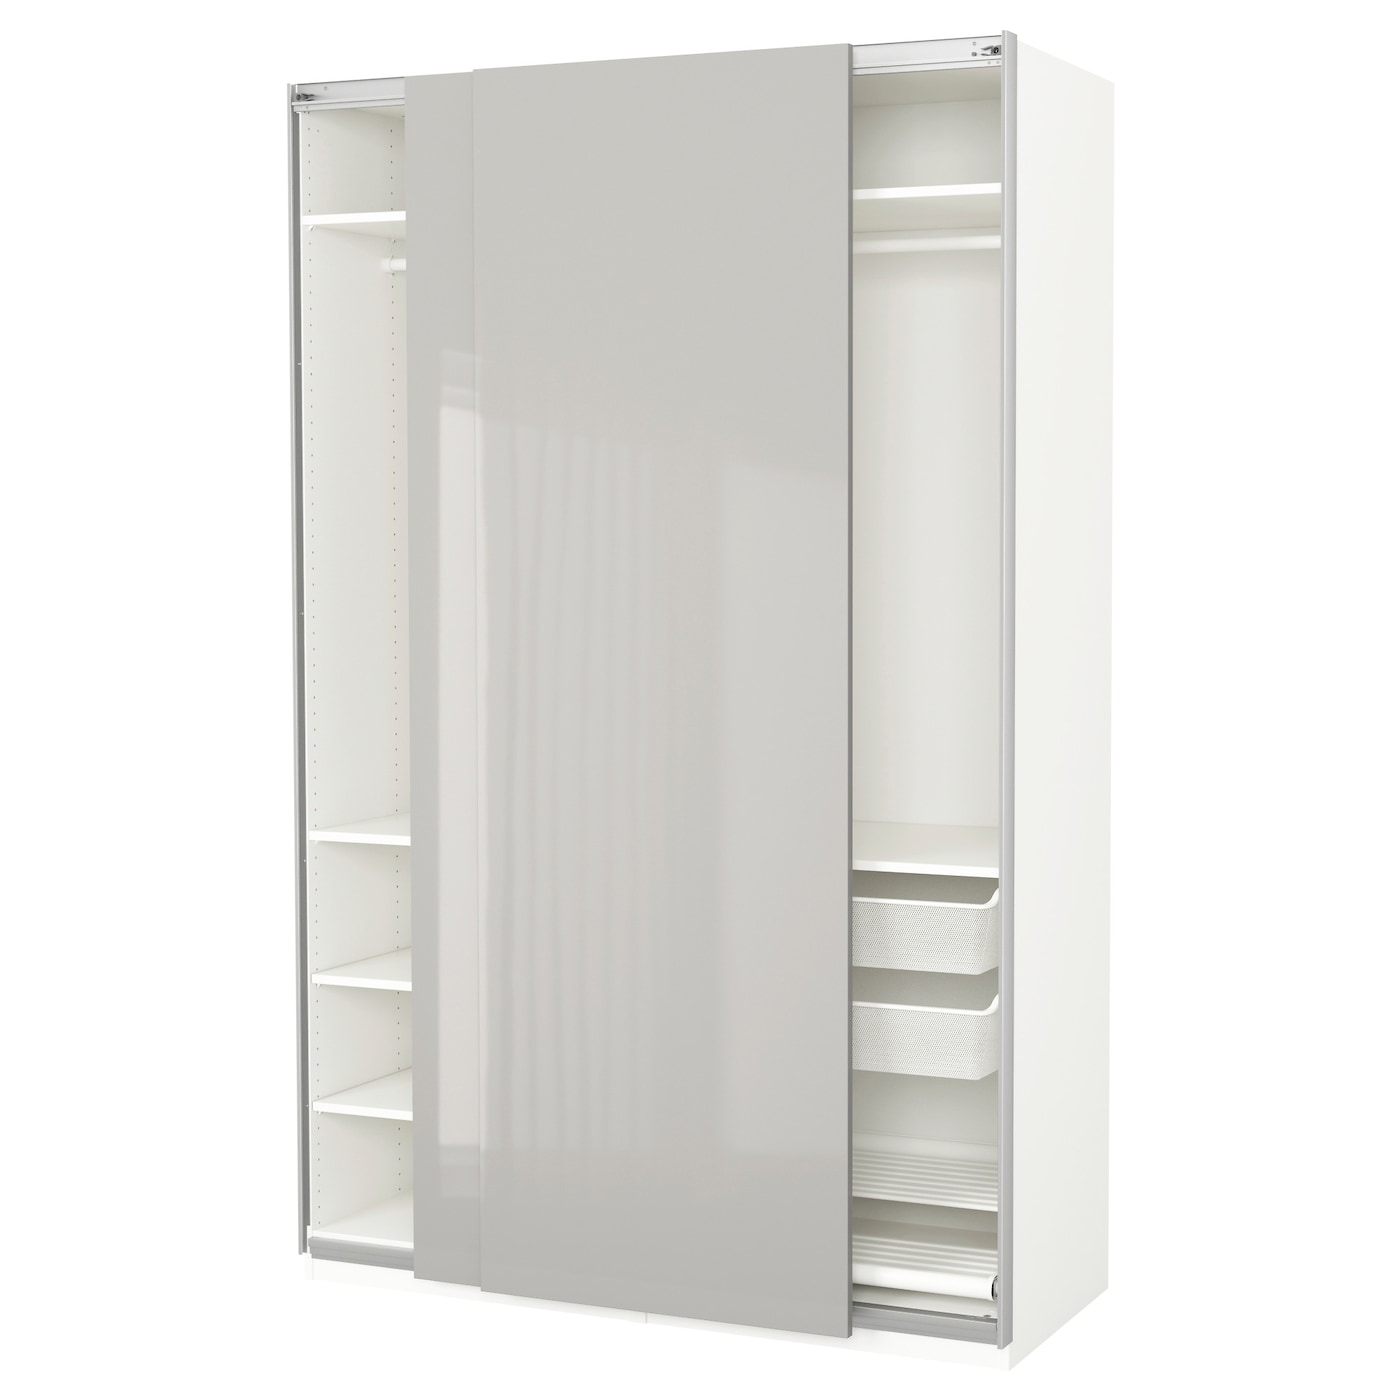 pax wardrobe white hasvik high gloss light grey 150x66x236 cm ikea. Black Bedroom Furniture Sets. Home Design Ideas